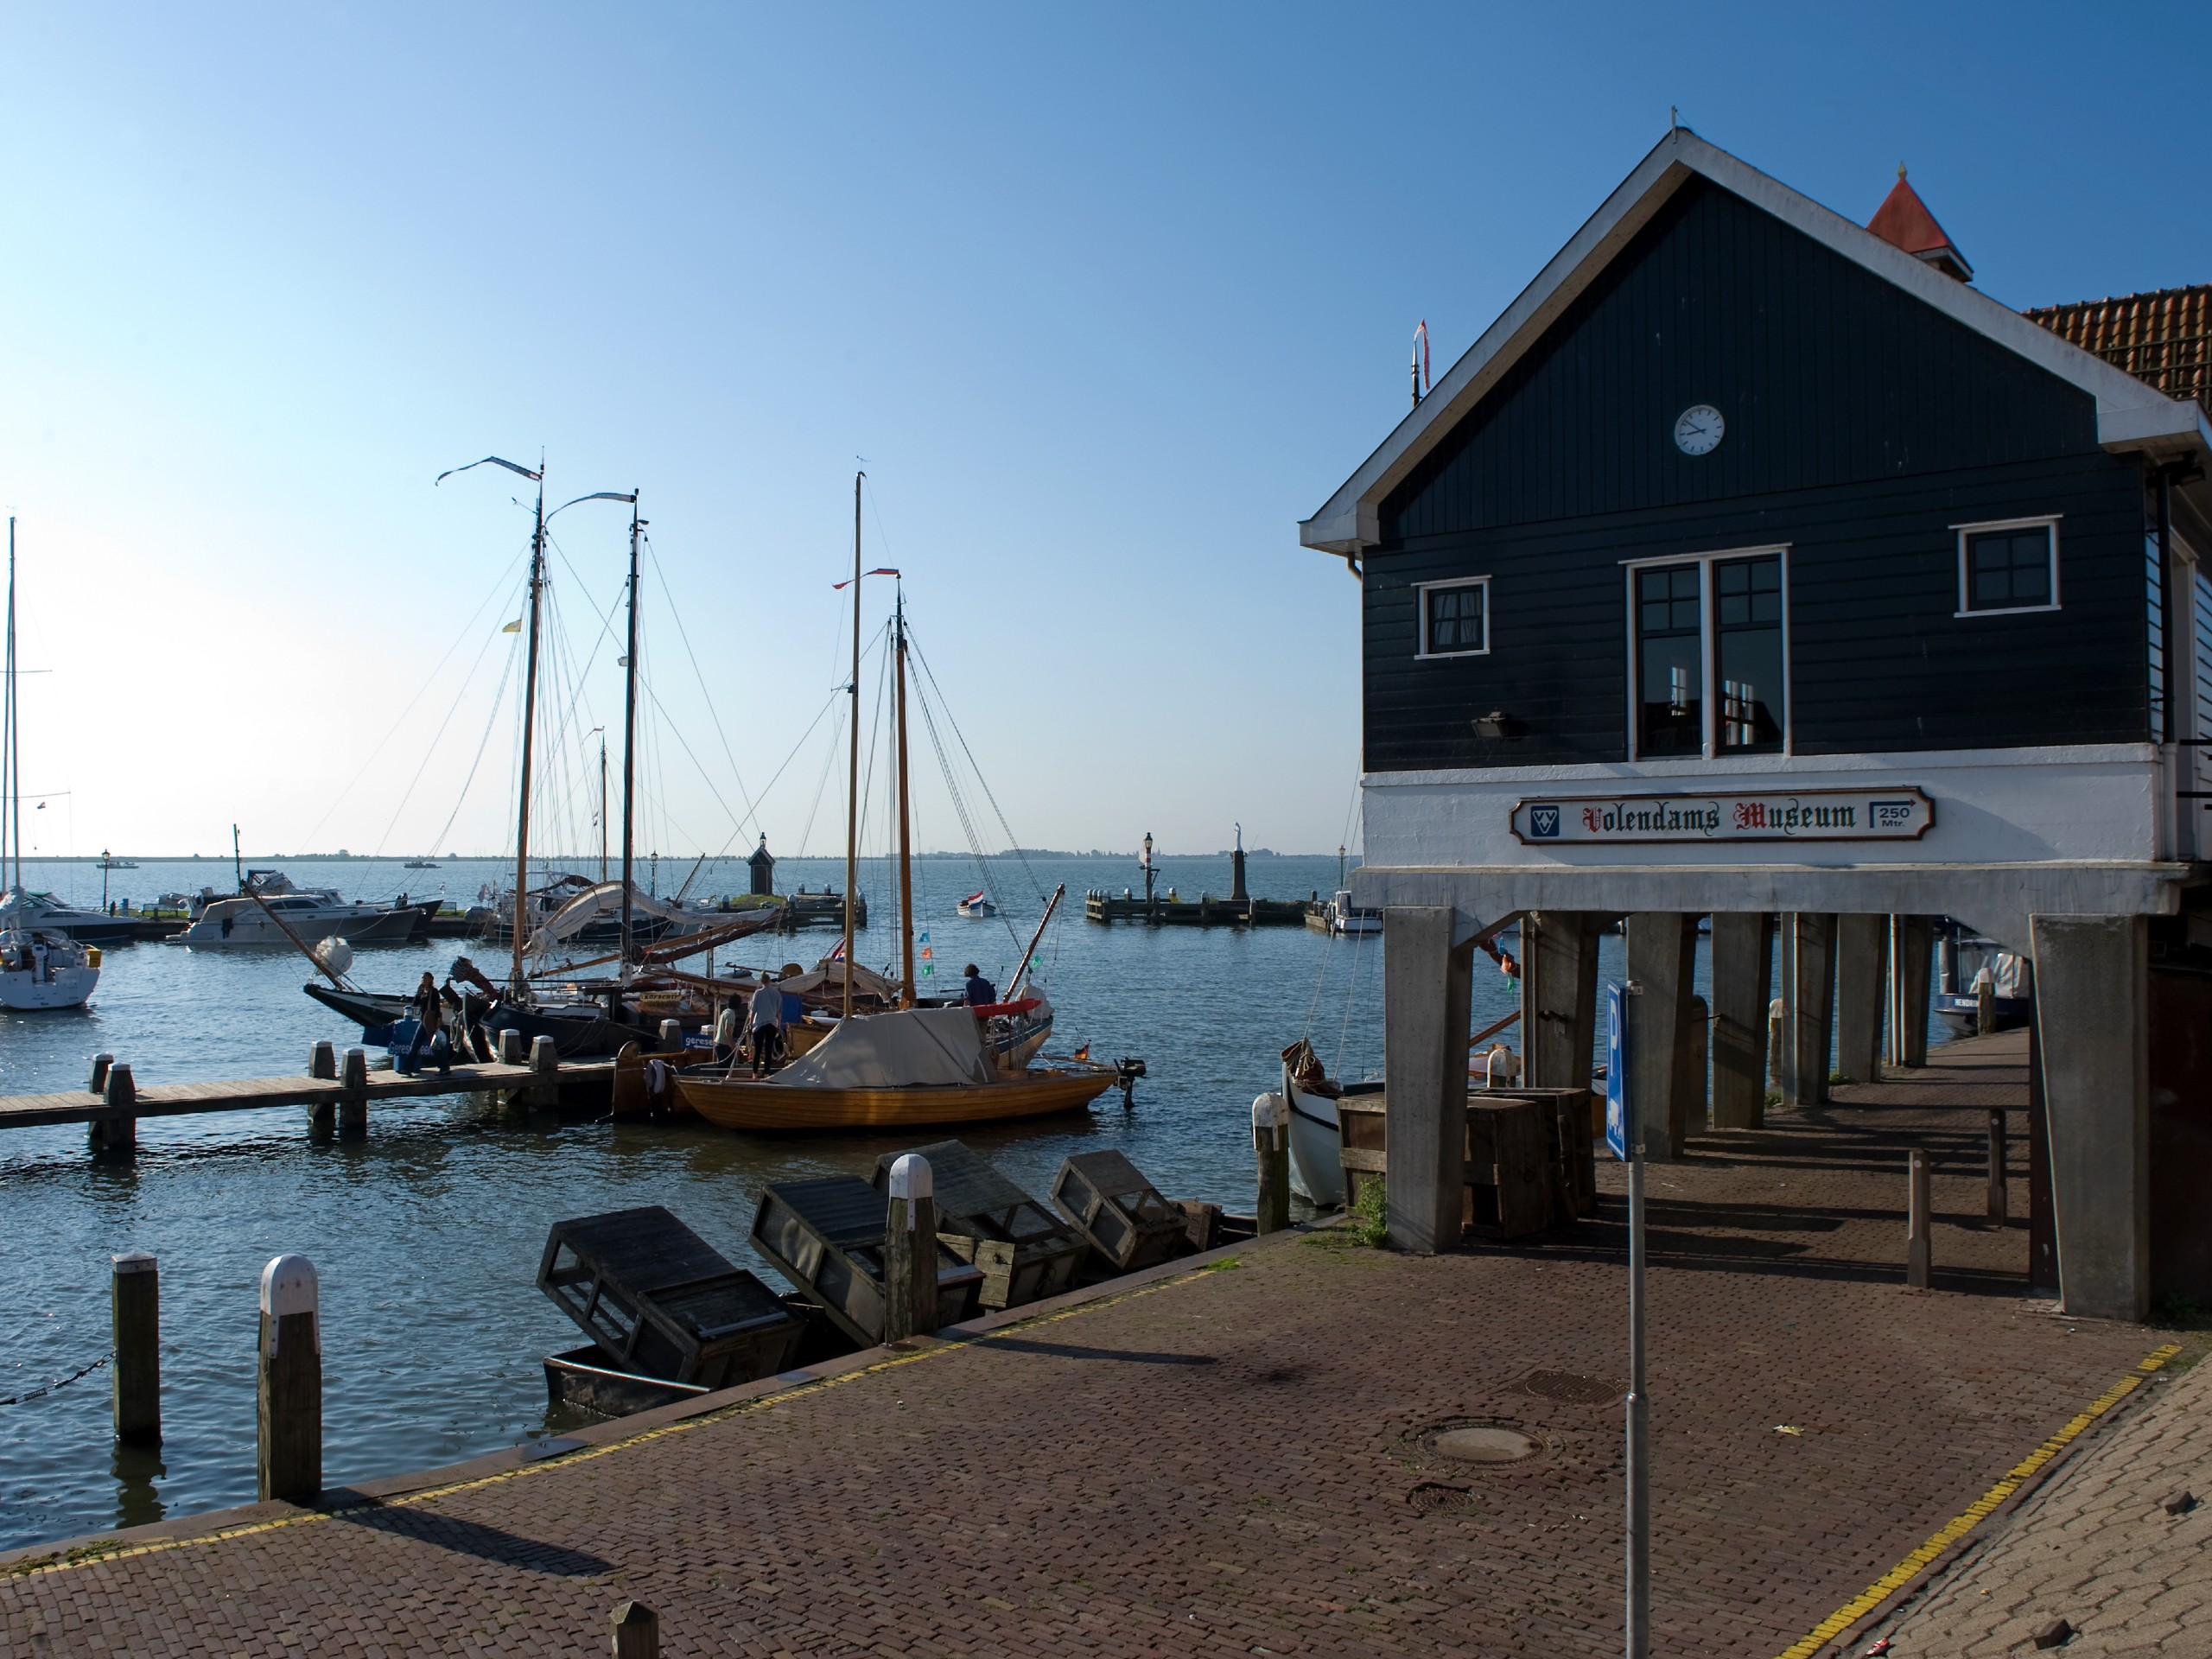 Volendam museum, visited on a self-guided biking tour in Holland